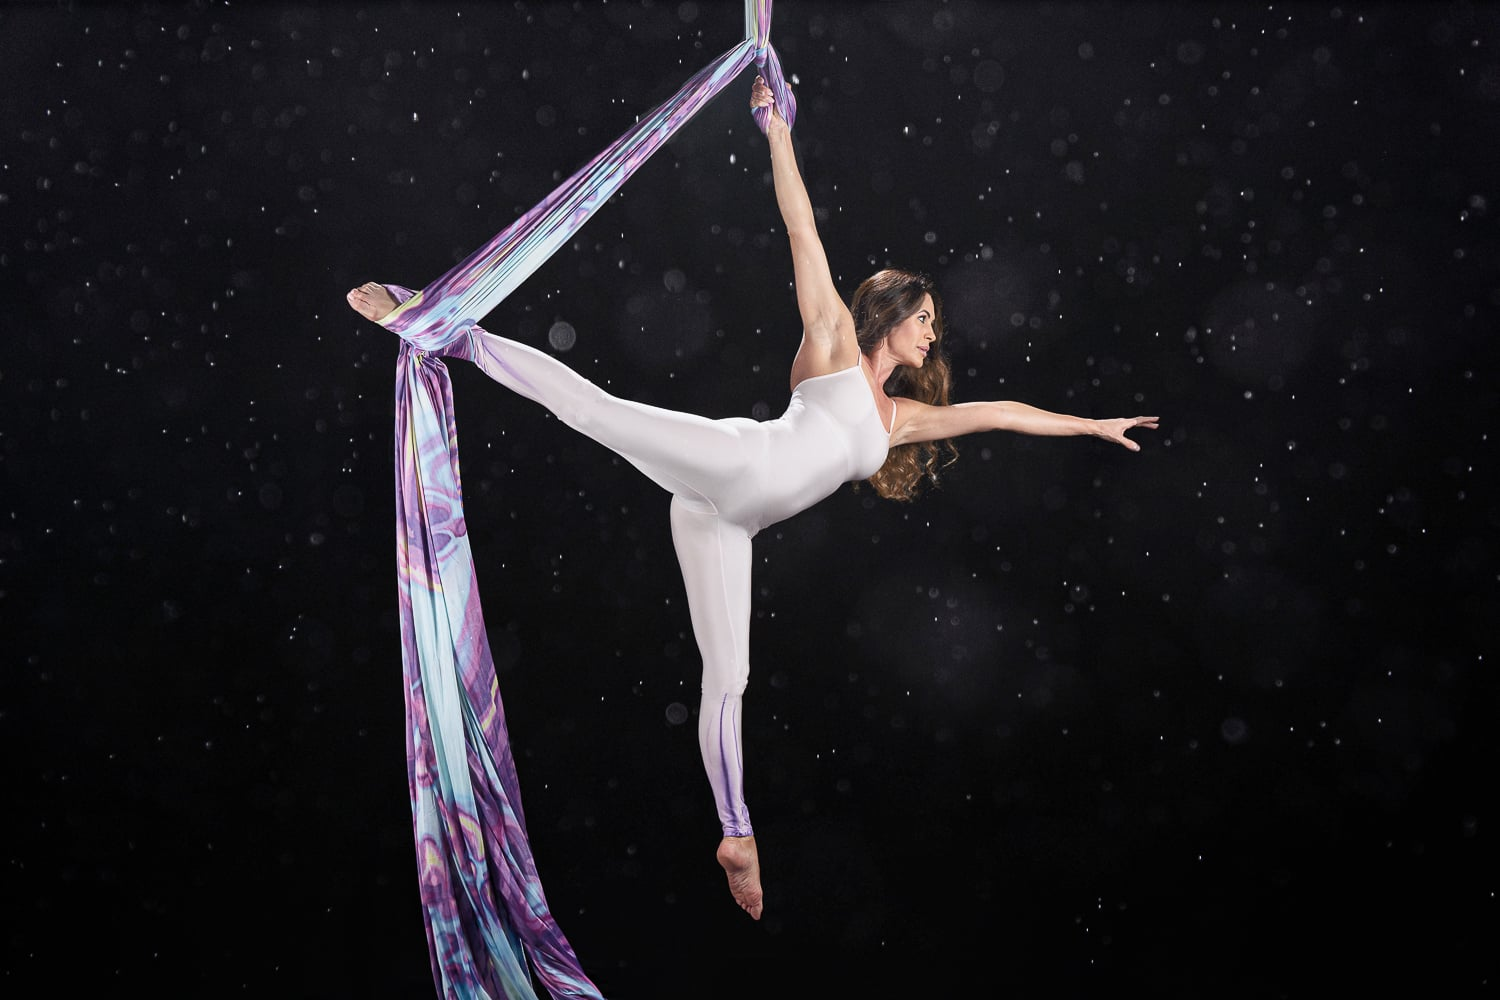 aerial dance classes near me, aerial dance studios in palm beach, dance photography, performing arts photography, performing arts fine art photography, dance lifestyle photography, dance lifestyle photo, performing arts commercial photography, west palm beach dance photographer, west palm beach dance photography, dance instructor portraits, dance studio portraits, dance studio photography, dance studio photographer, ballet photographer, ballerina photography, Acro-Dance Company Palm Beach, fabric photography ideas, fabric photoshoot ideas, fabric photography